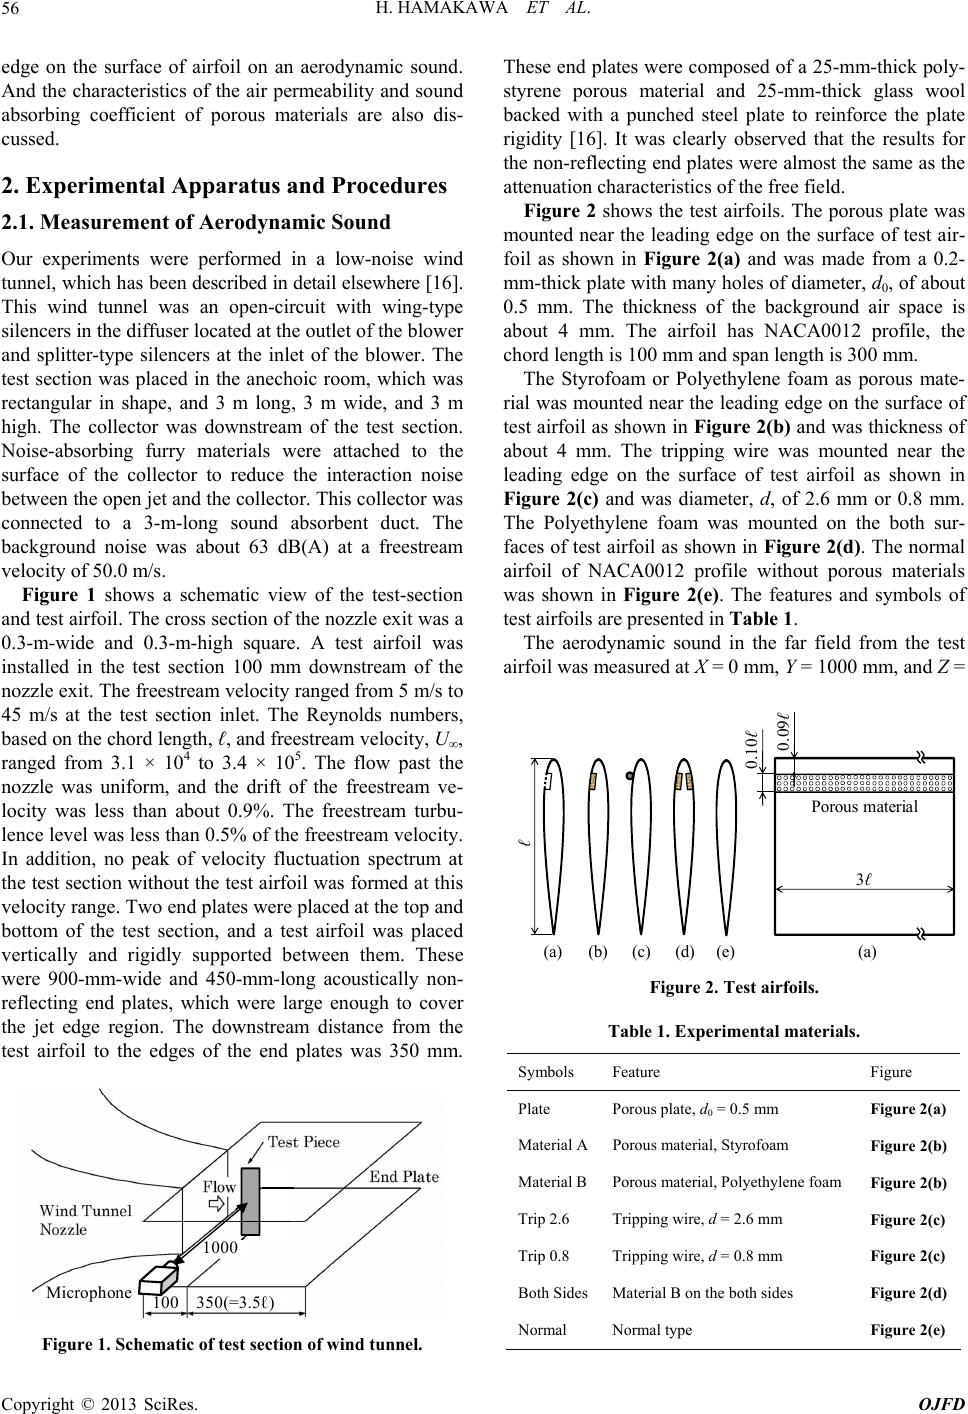 aerodynamic and dynamic study of a Prior studies have revealed that golf ball aerodynamics is still not fully understood due to the varied dimple size, shape, depth and pattern the current study experimentally measured drag coefficients of a range of commercially available golf balls, under a range of wind speeds.